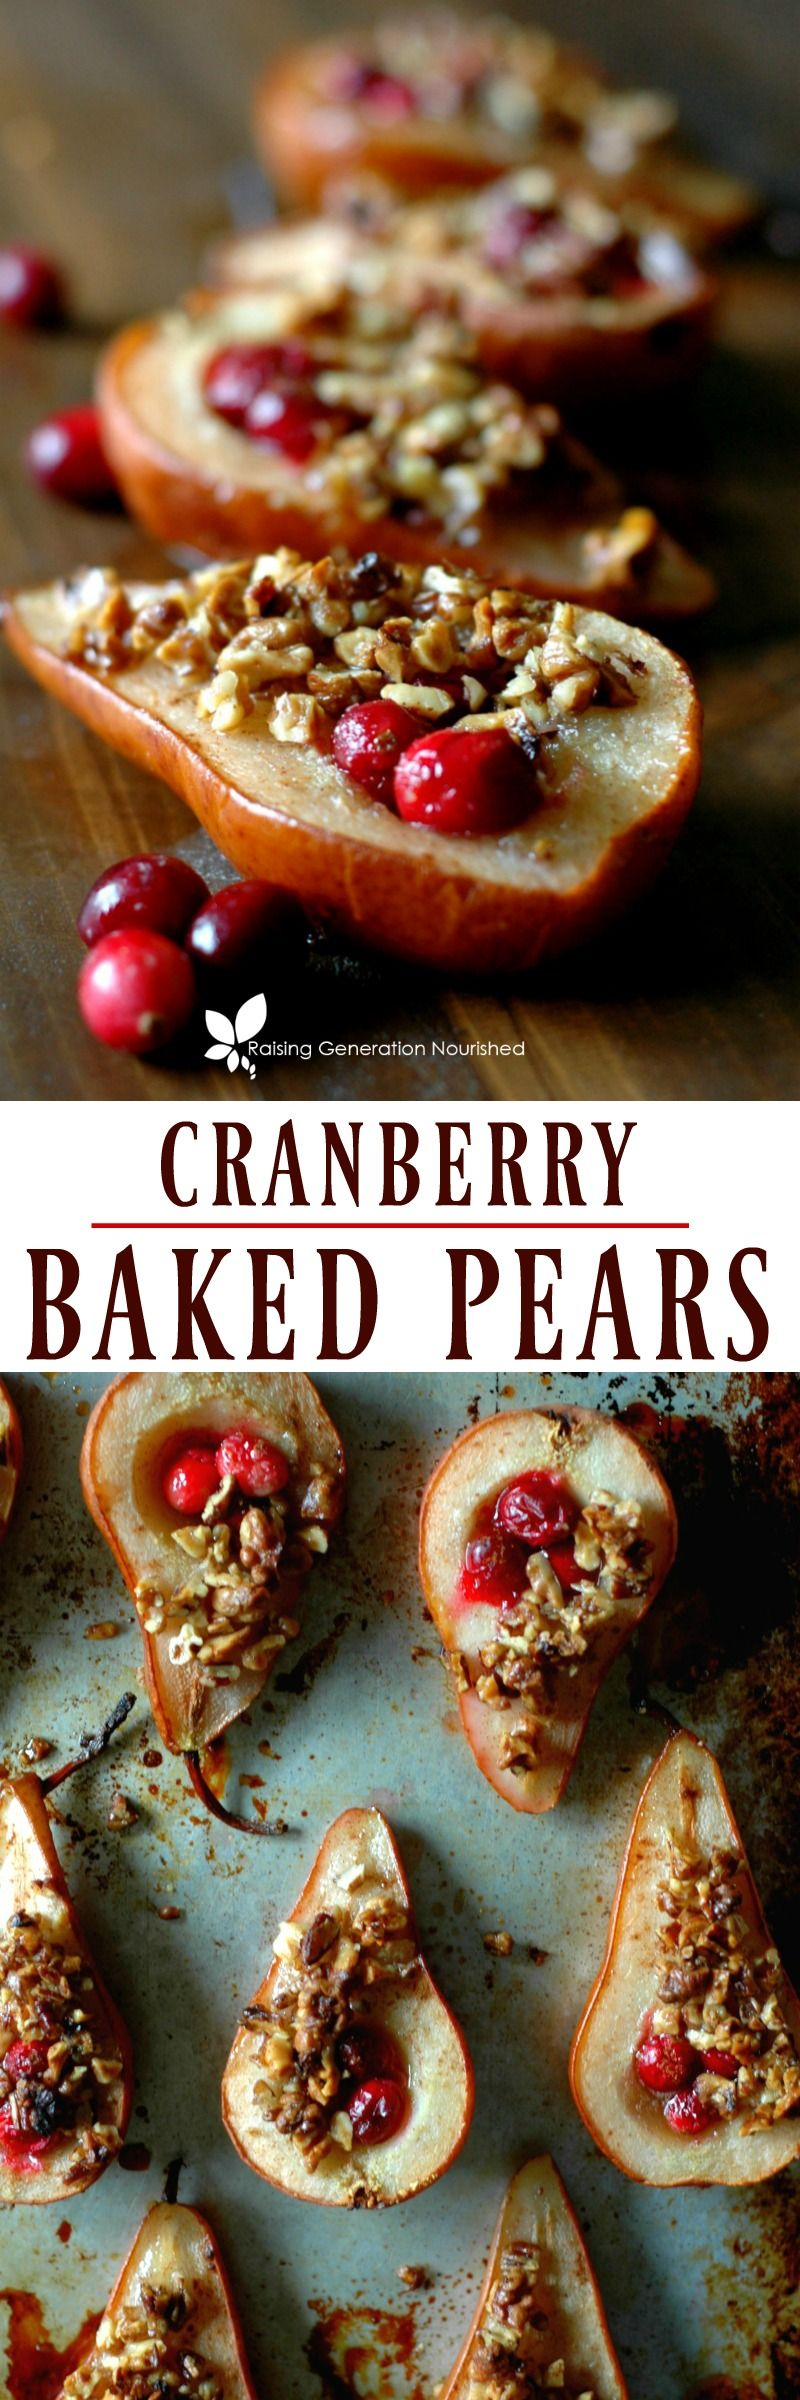 Cranberry Baked Pears Recipe Baked Pears Pear Recipes Fruit